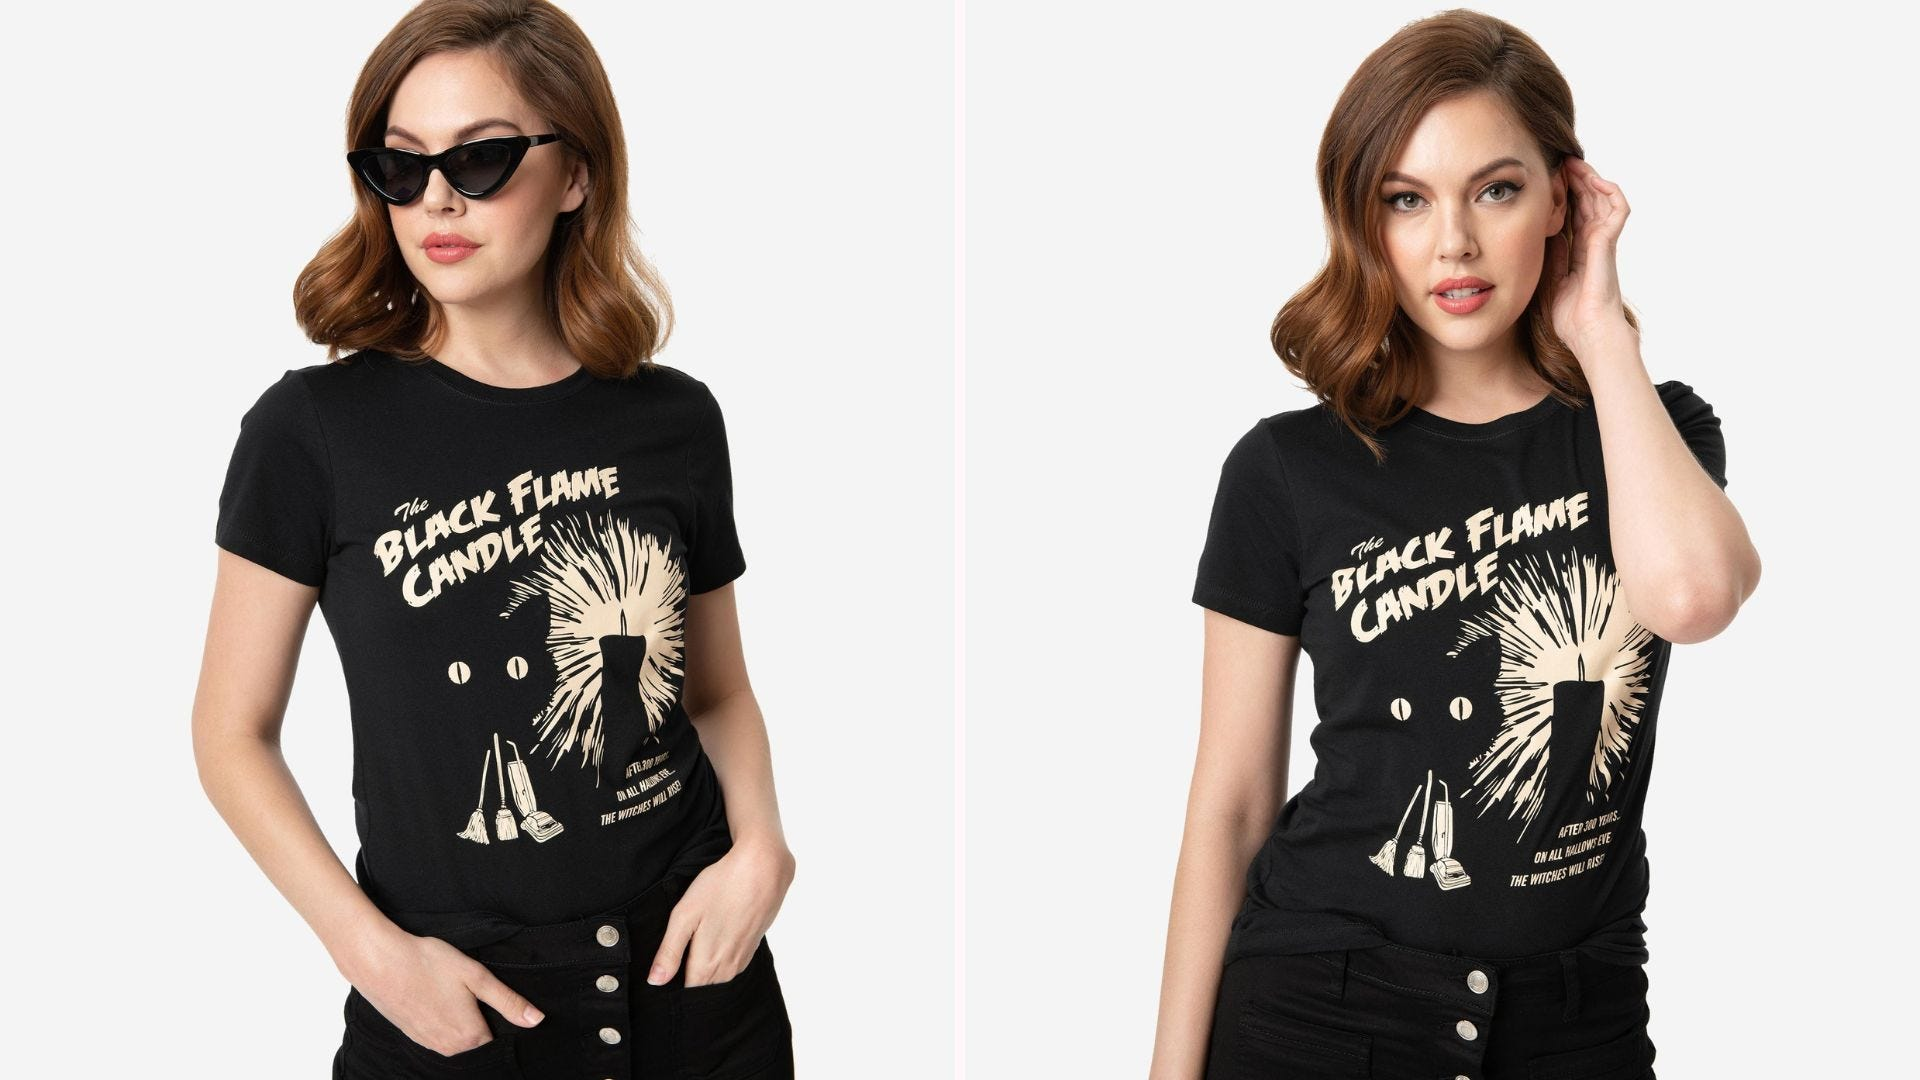 """Two angles of a woman wearing a black T-shirt with """"The Black Flame Candle"""" graphic design"""